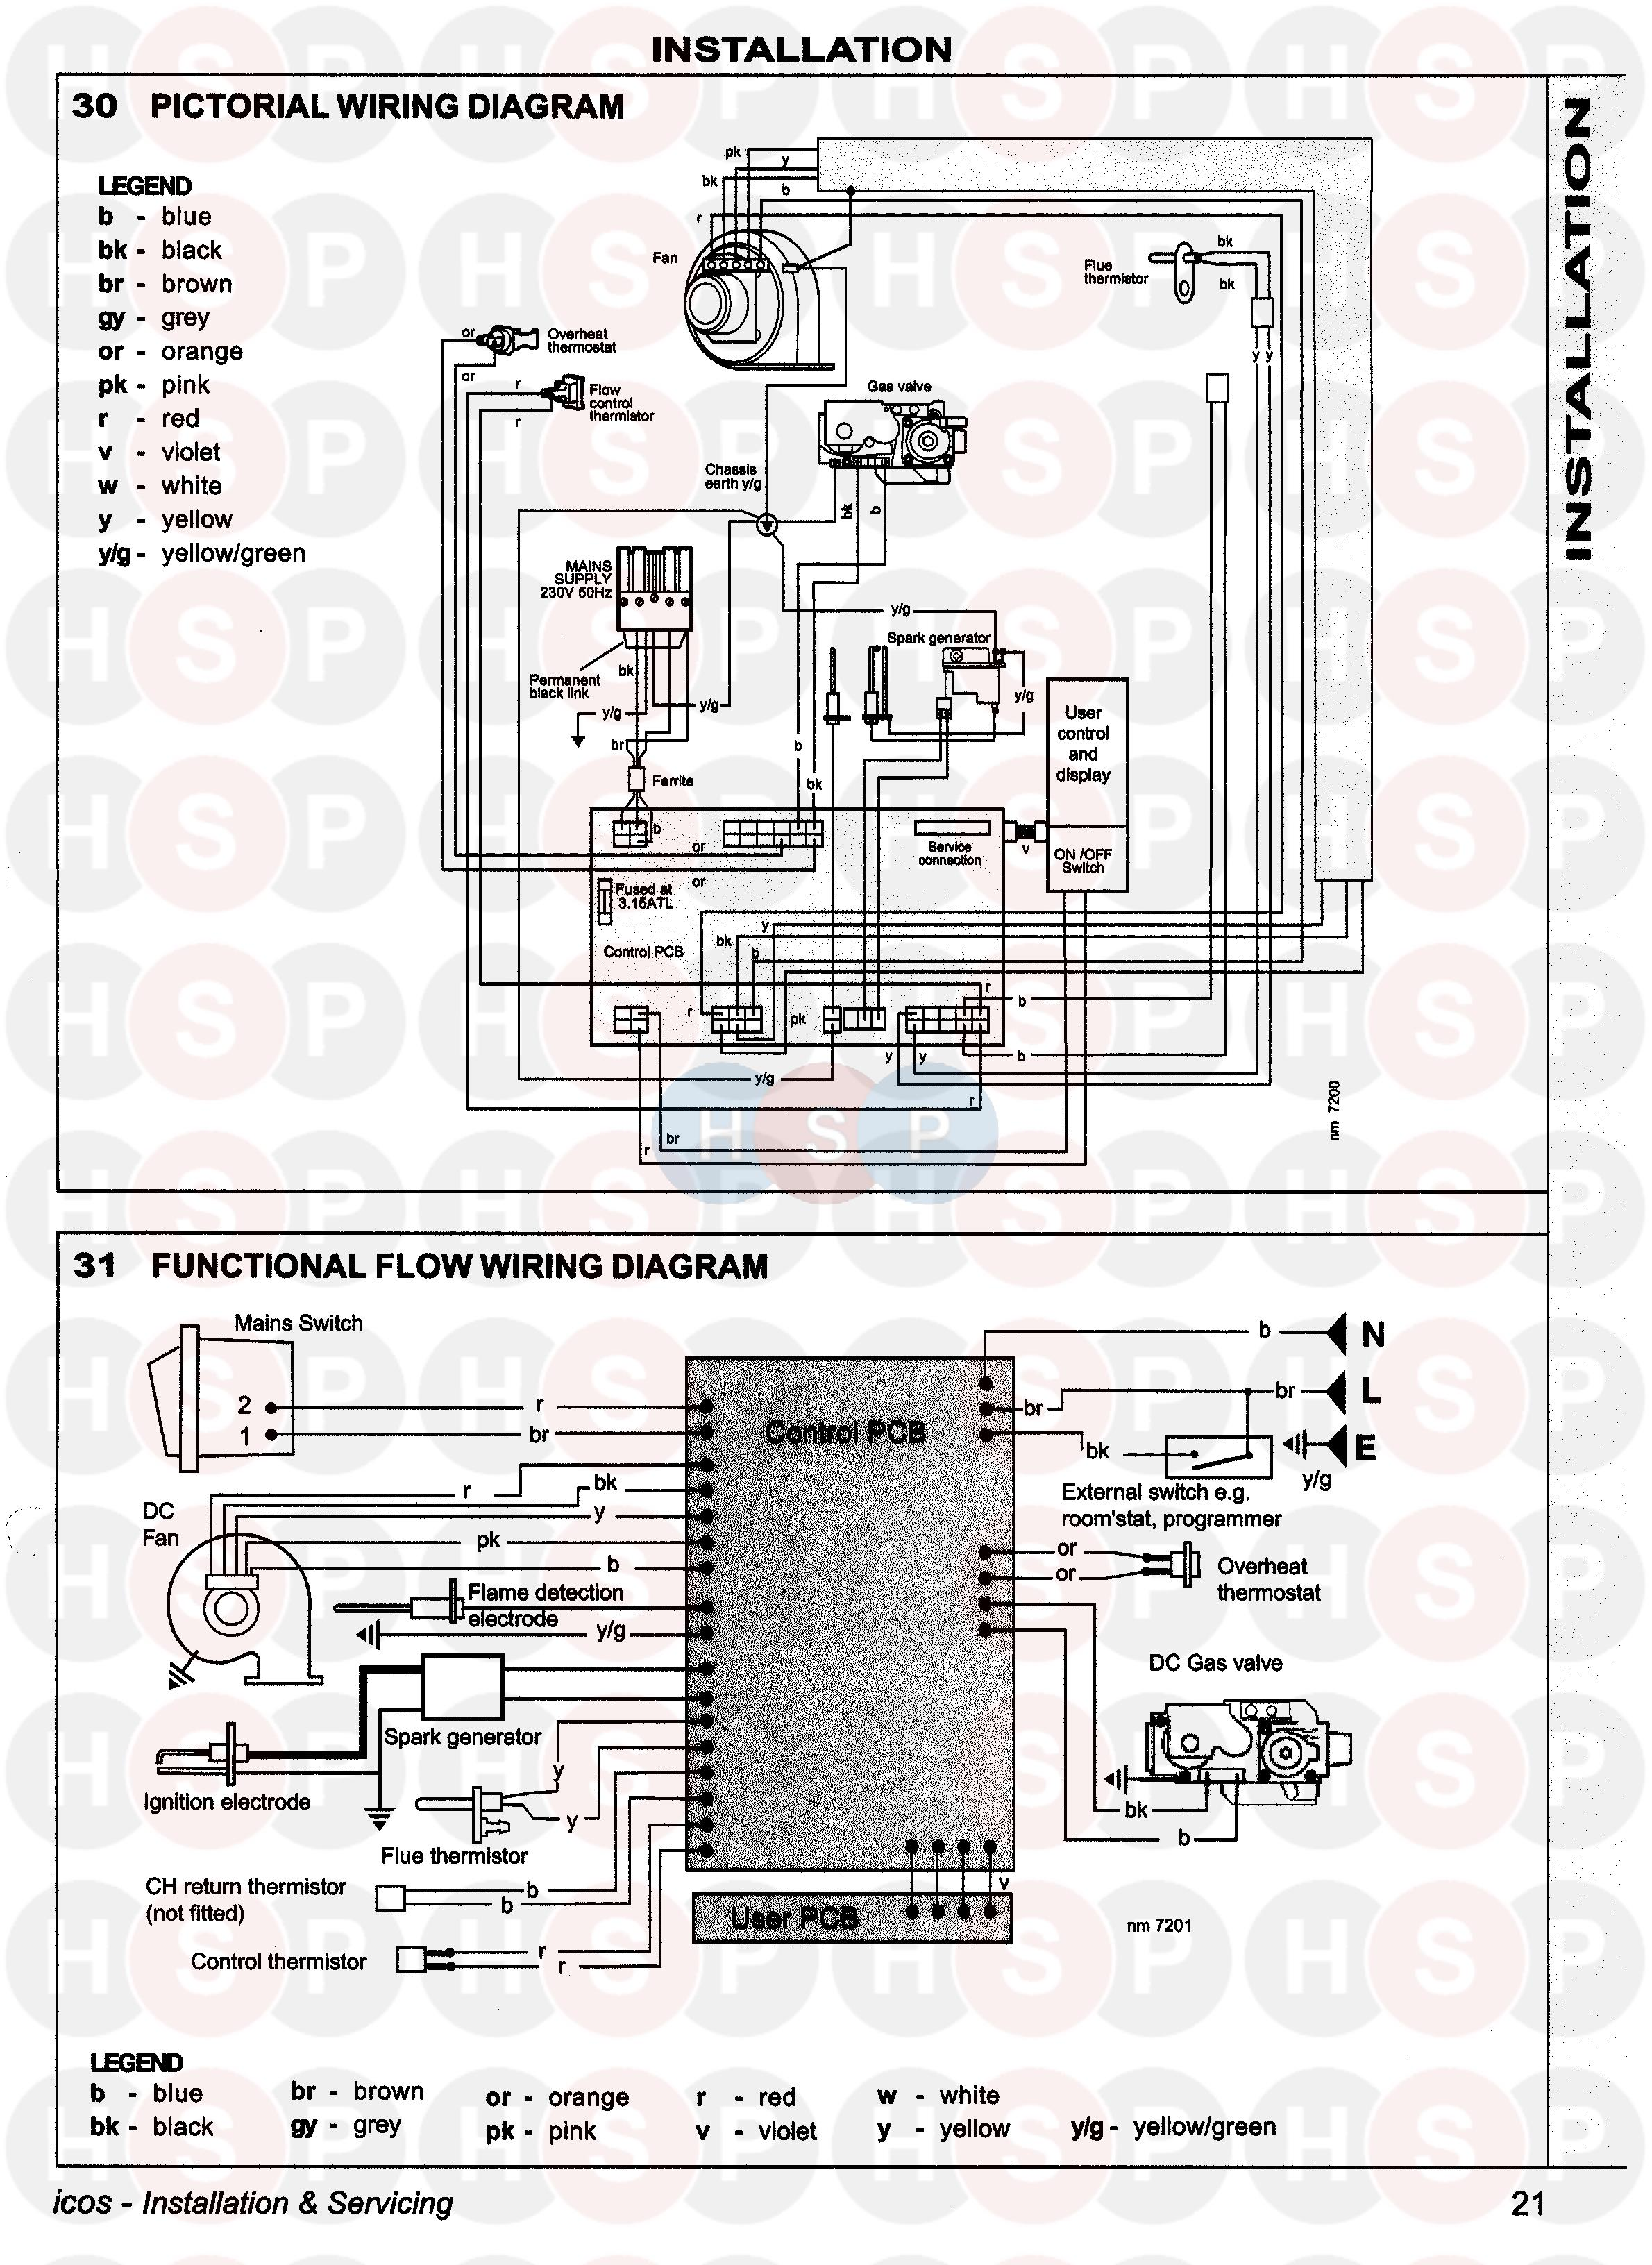 Ideal Icos He15 Wiring Diagram Heating Spare Parts Alpha Boilers Diagrams Click The To Open It On A New Page